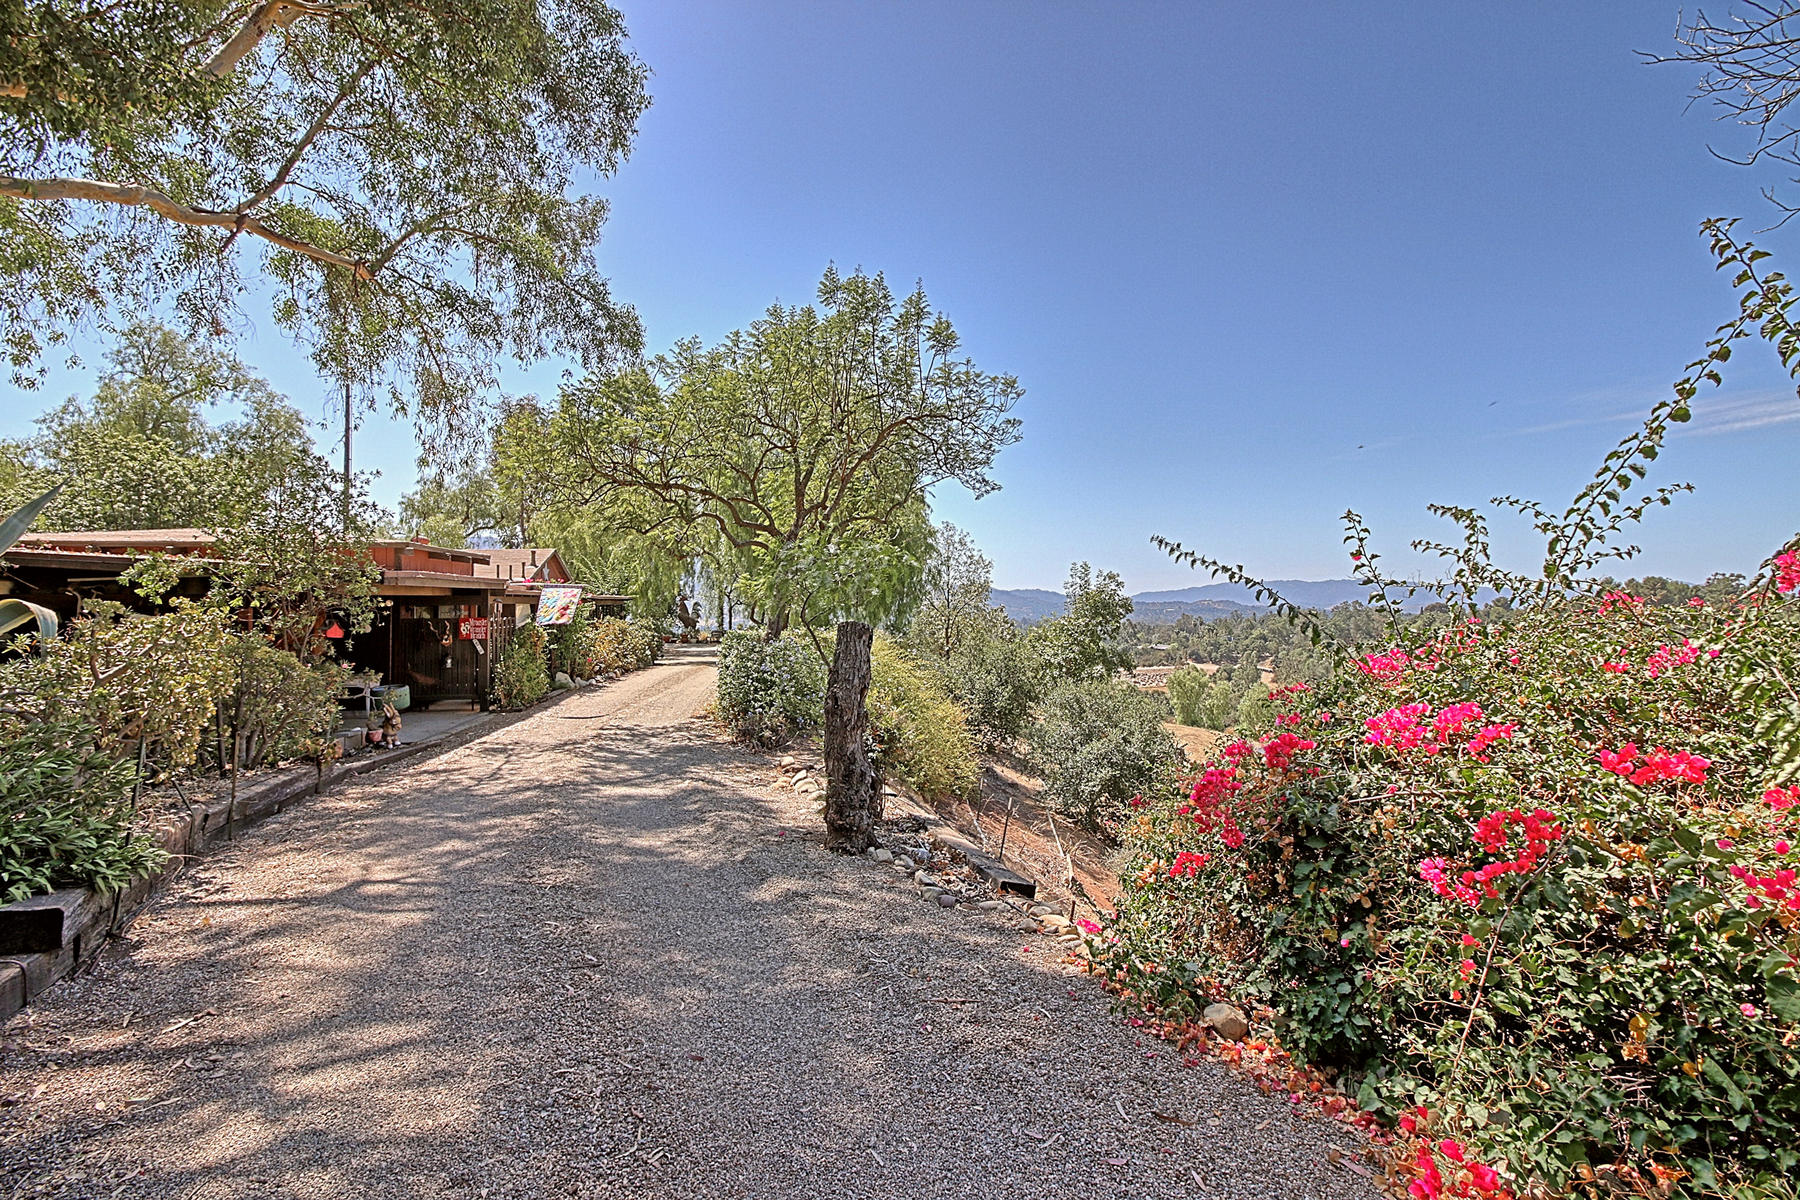 Single Family Homes for Sale at 1203 N. Signal Street, Ojai 1203 N. Signal Street Ojai, California 93023 United States